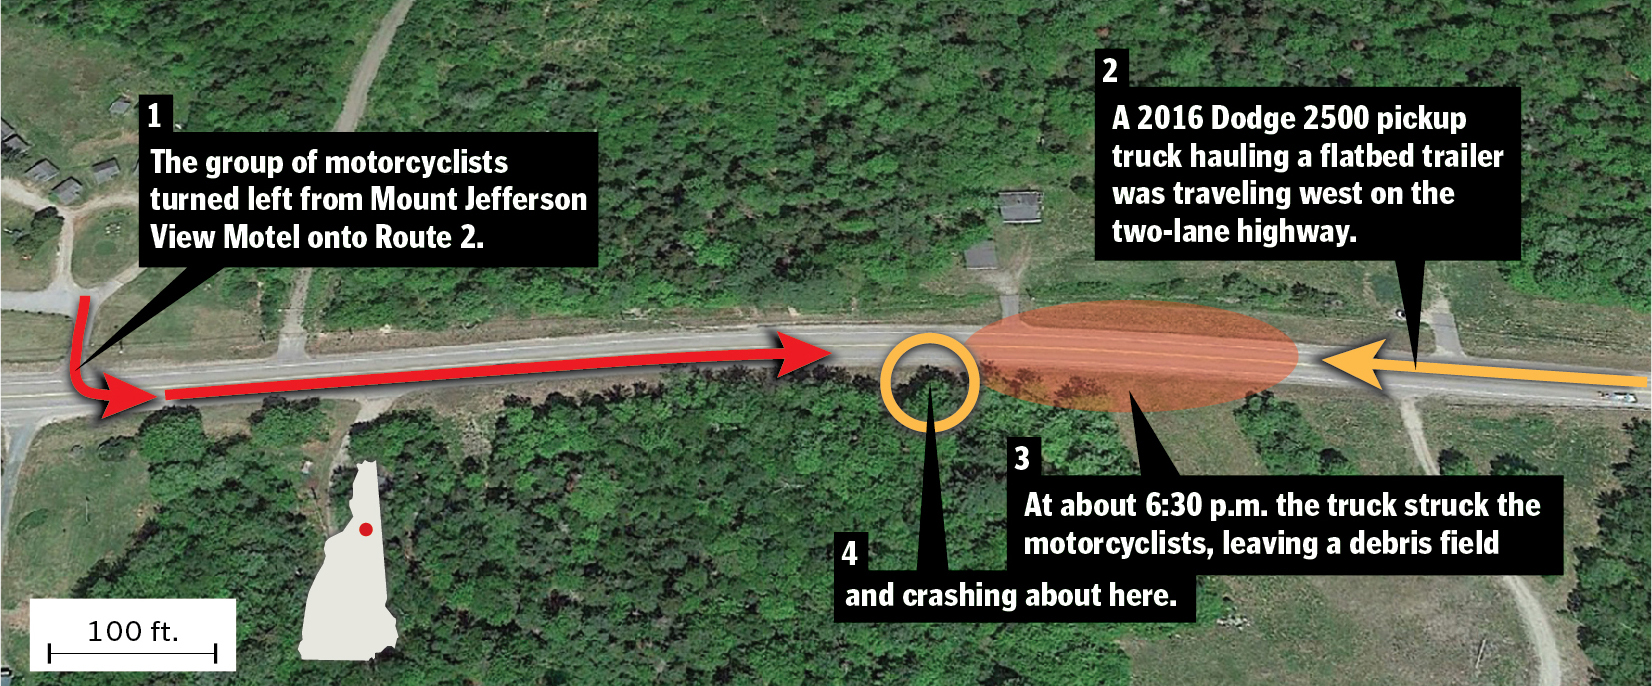 What We Know So Far About The Horrific Crash That Killed 7 People In